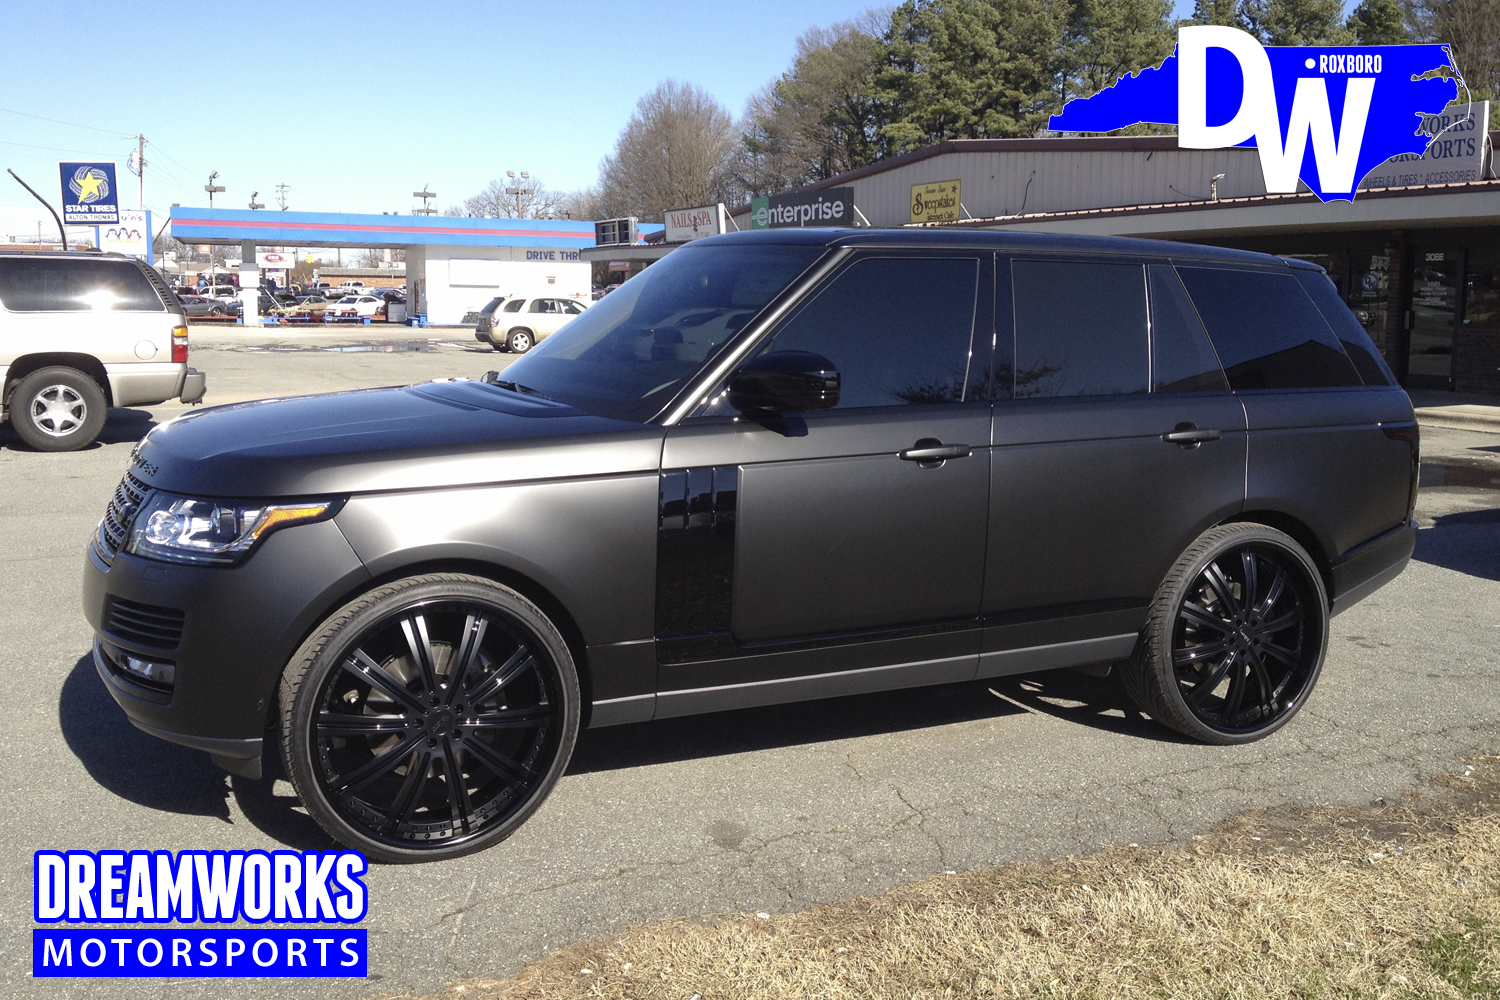 Wesley-Mathews-Range-Rover-Matte-Wrapped-By-Dreamworks-Motorsports-18.jpg